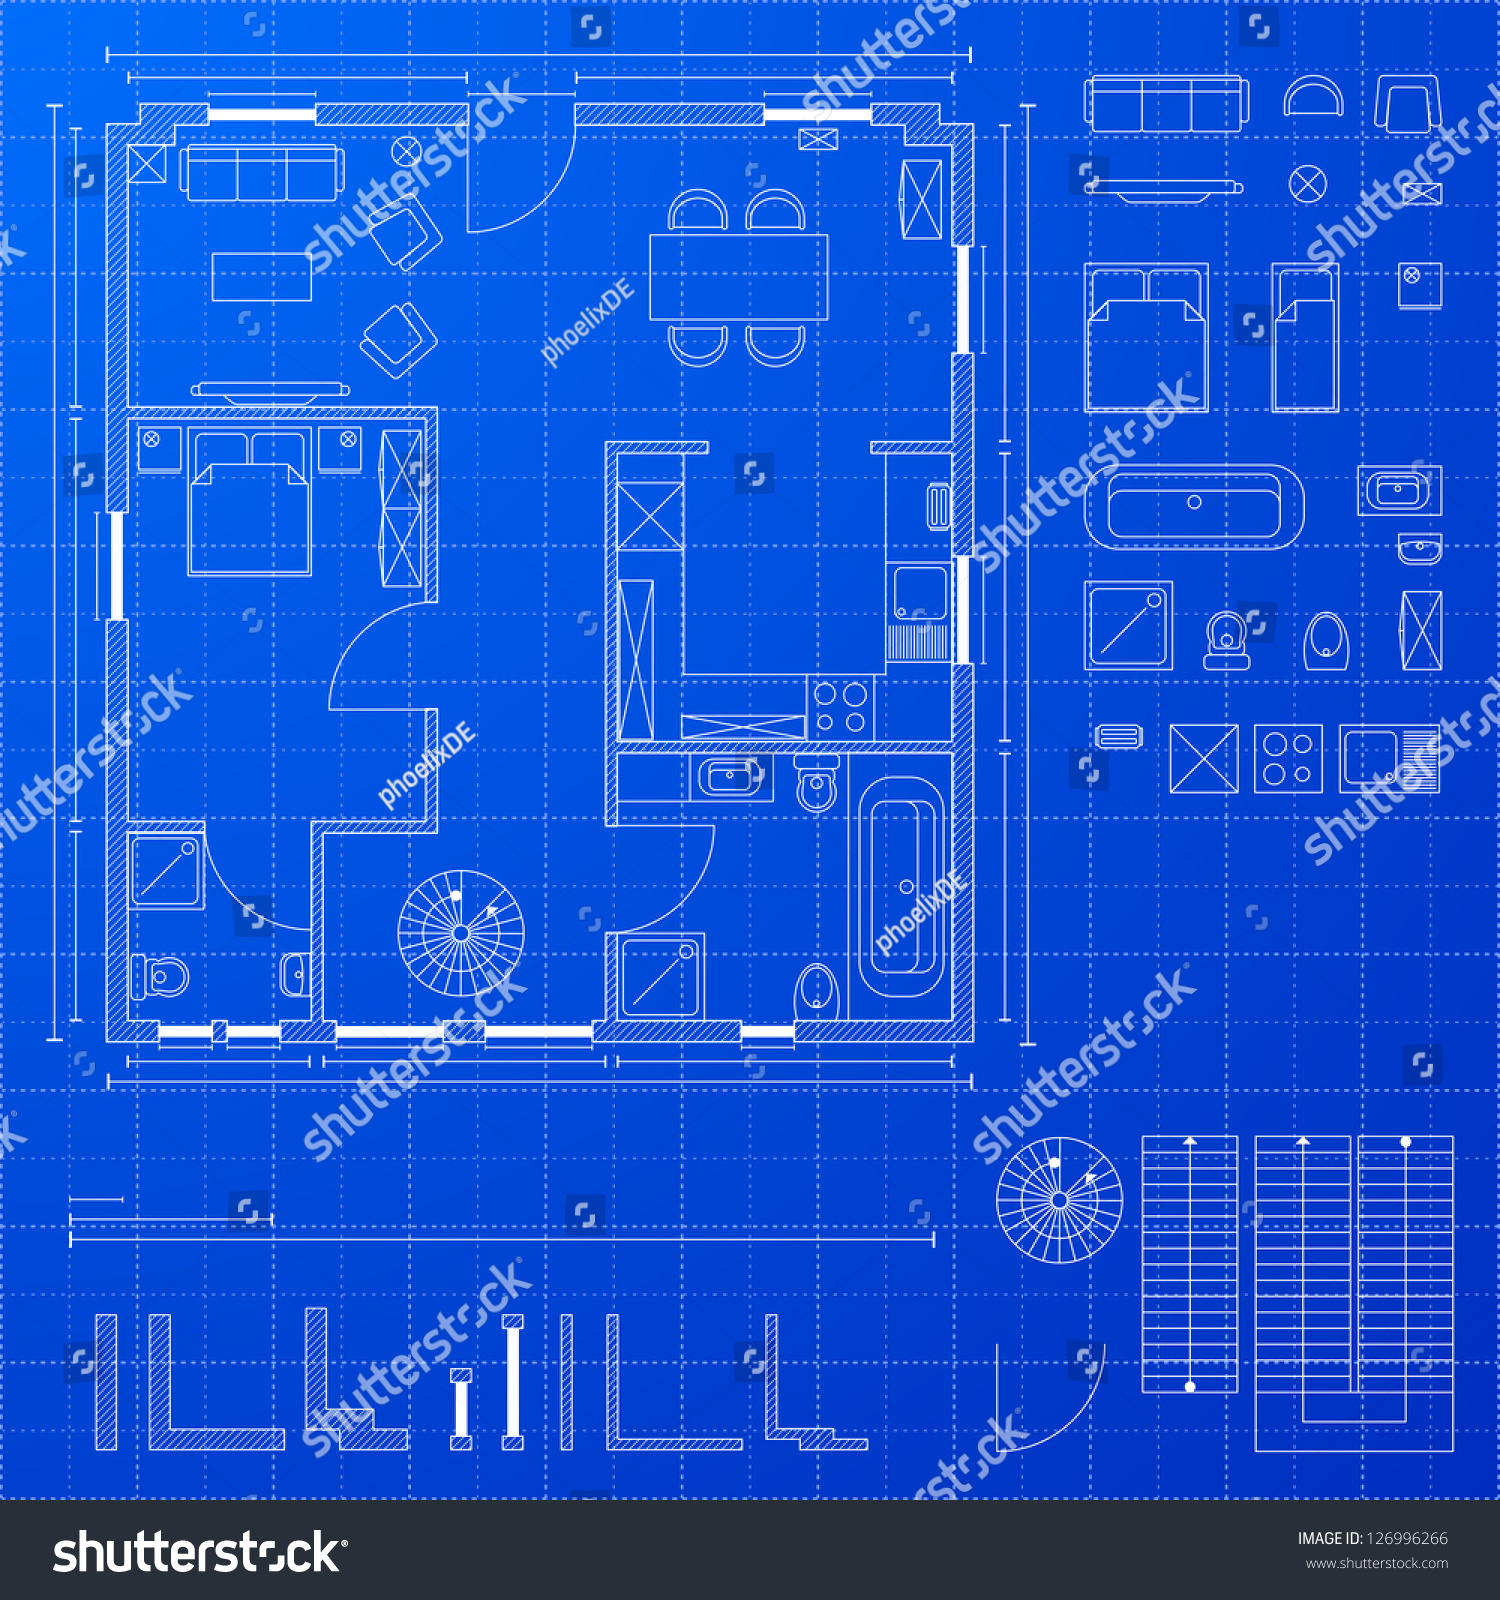 Detailed illustration blueprint floorplan various design Blueprint designer free